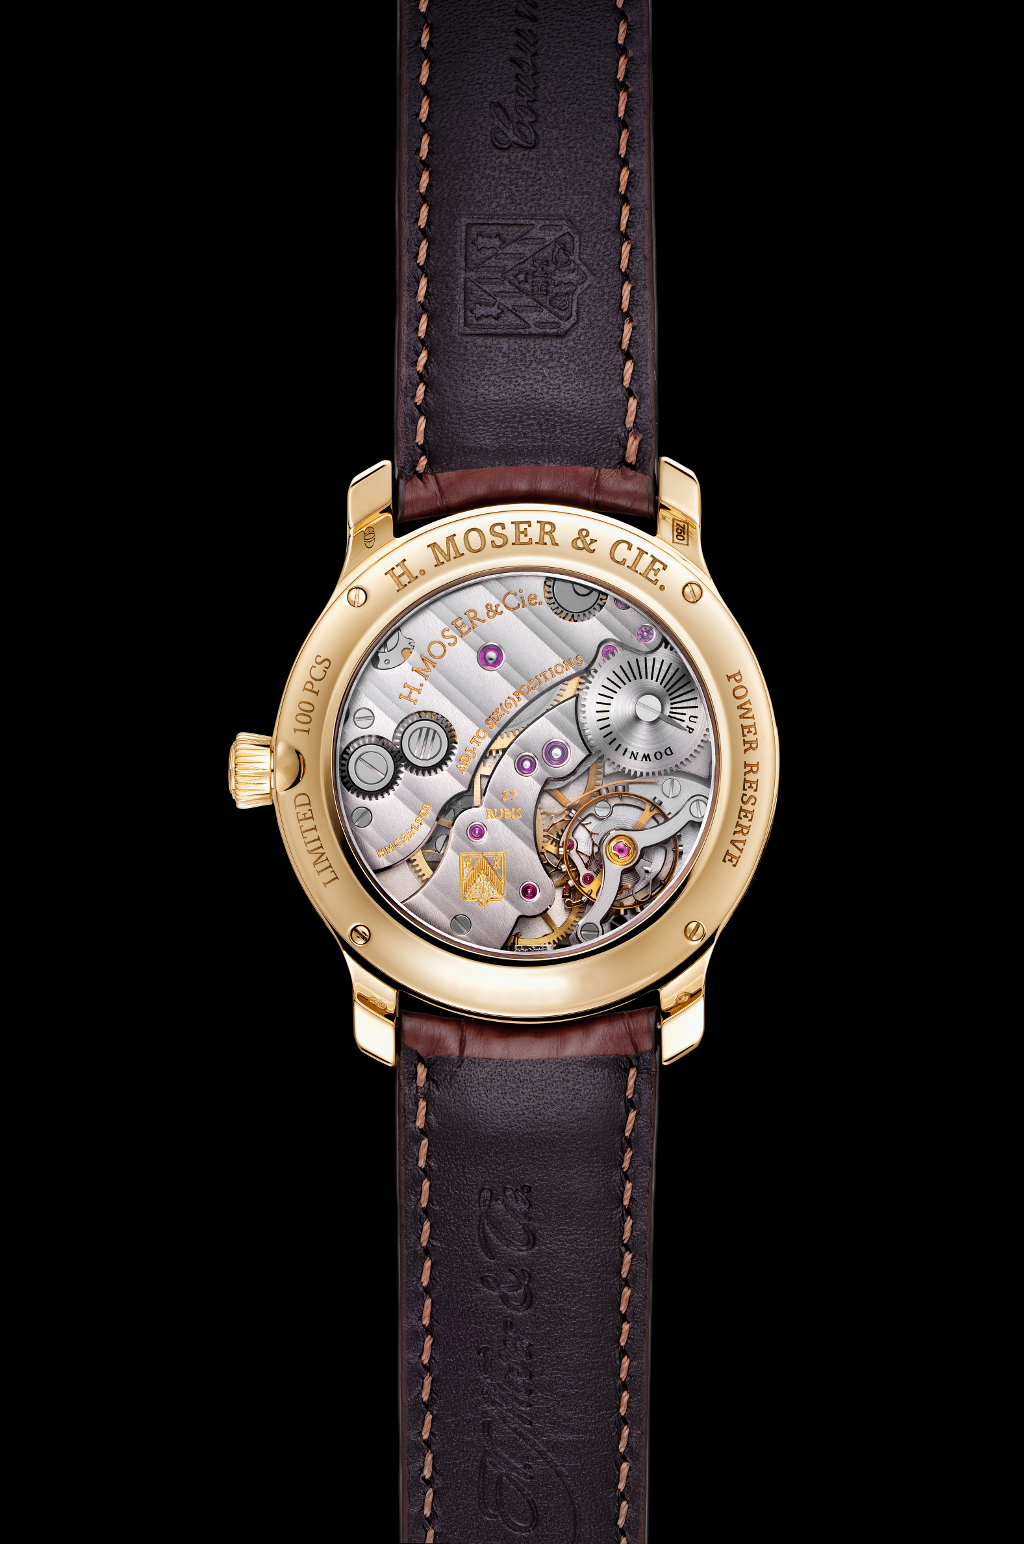 The watch is powered by H. Moser & Cie.'s HMC 321 calibre.